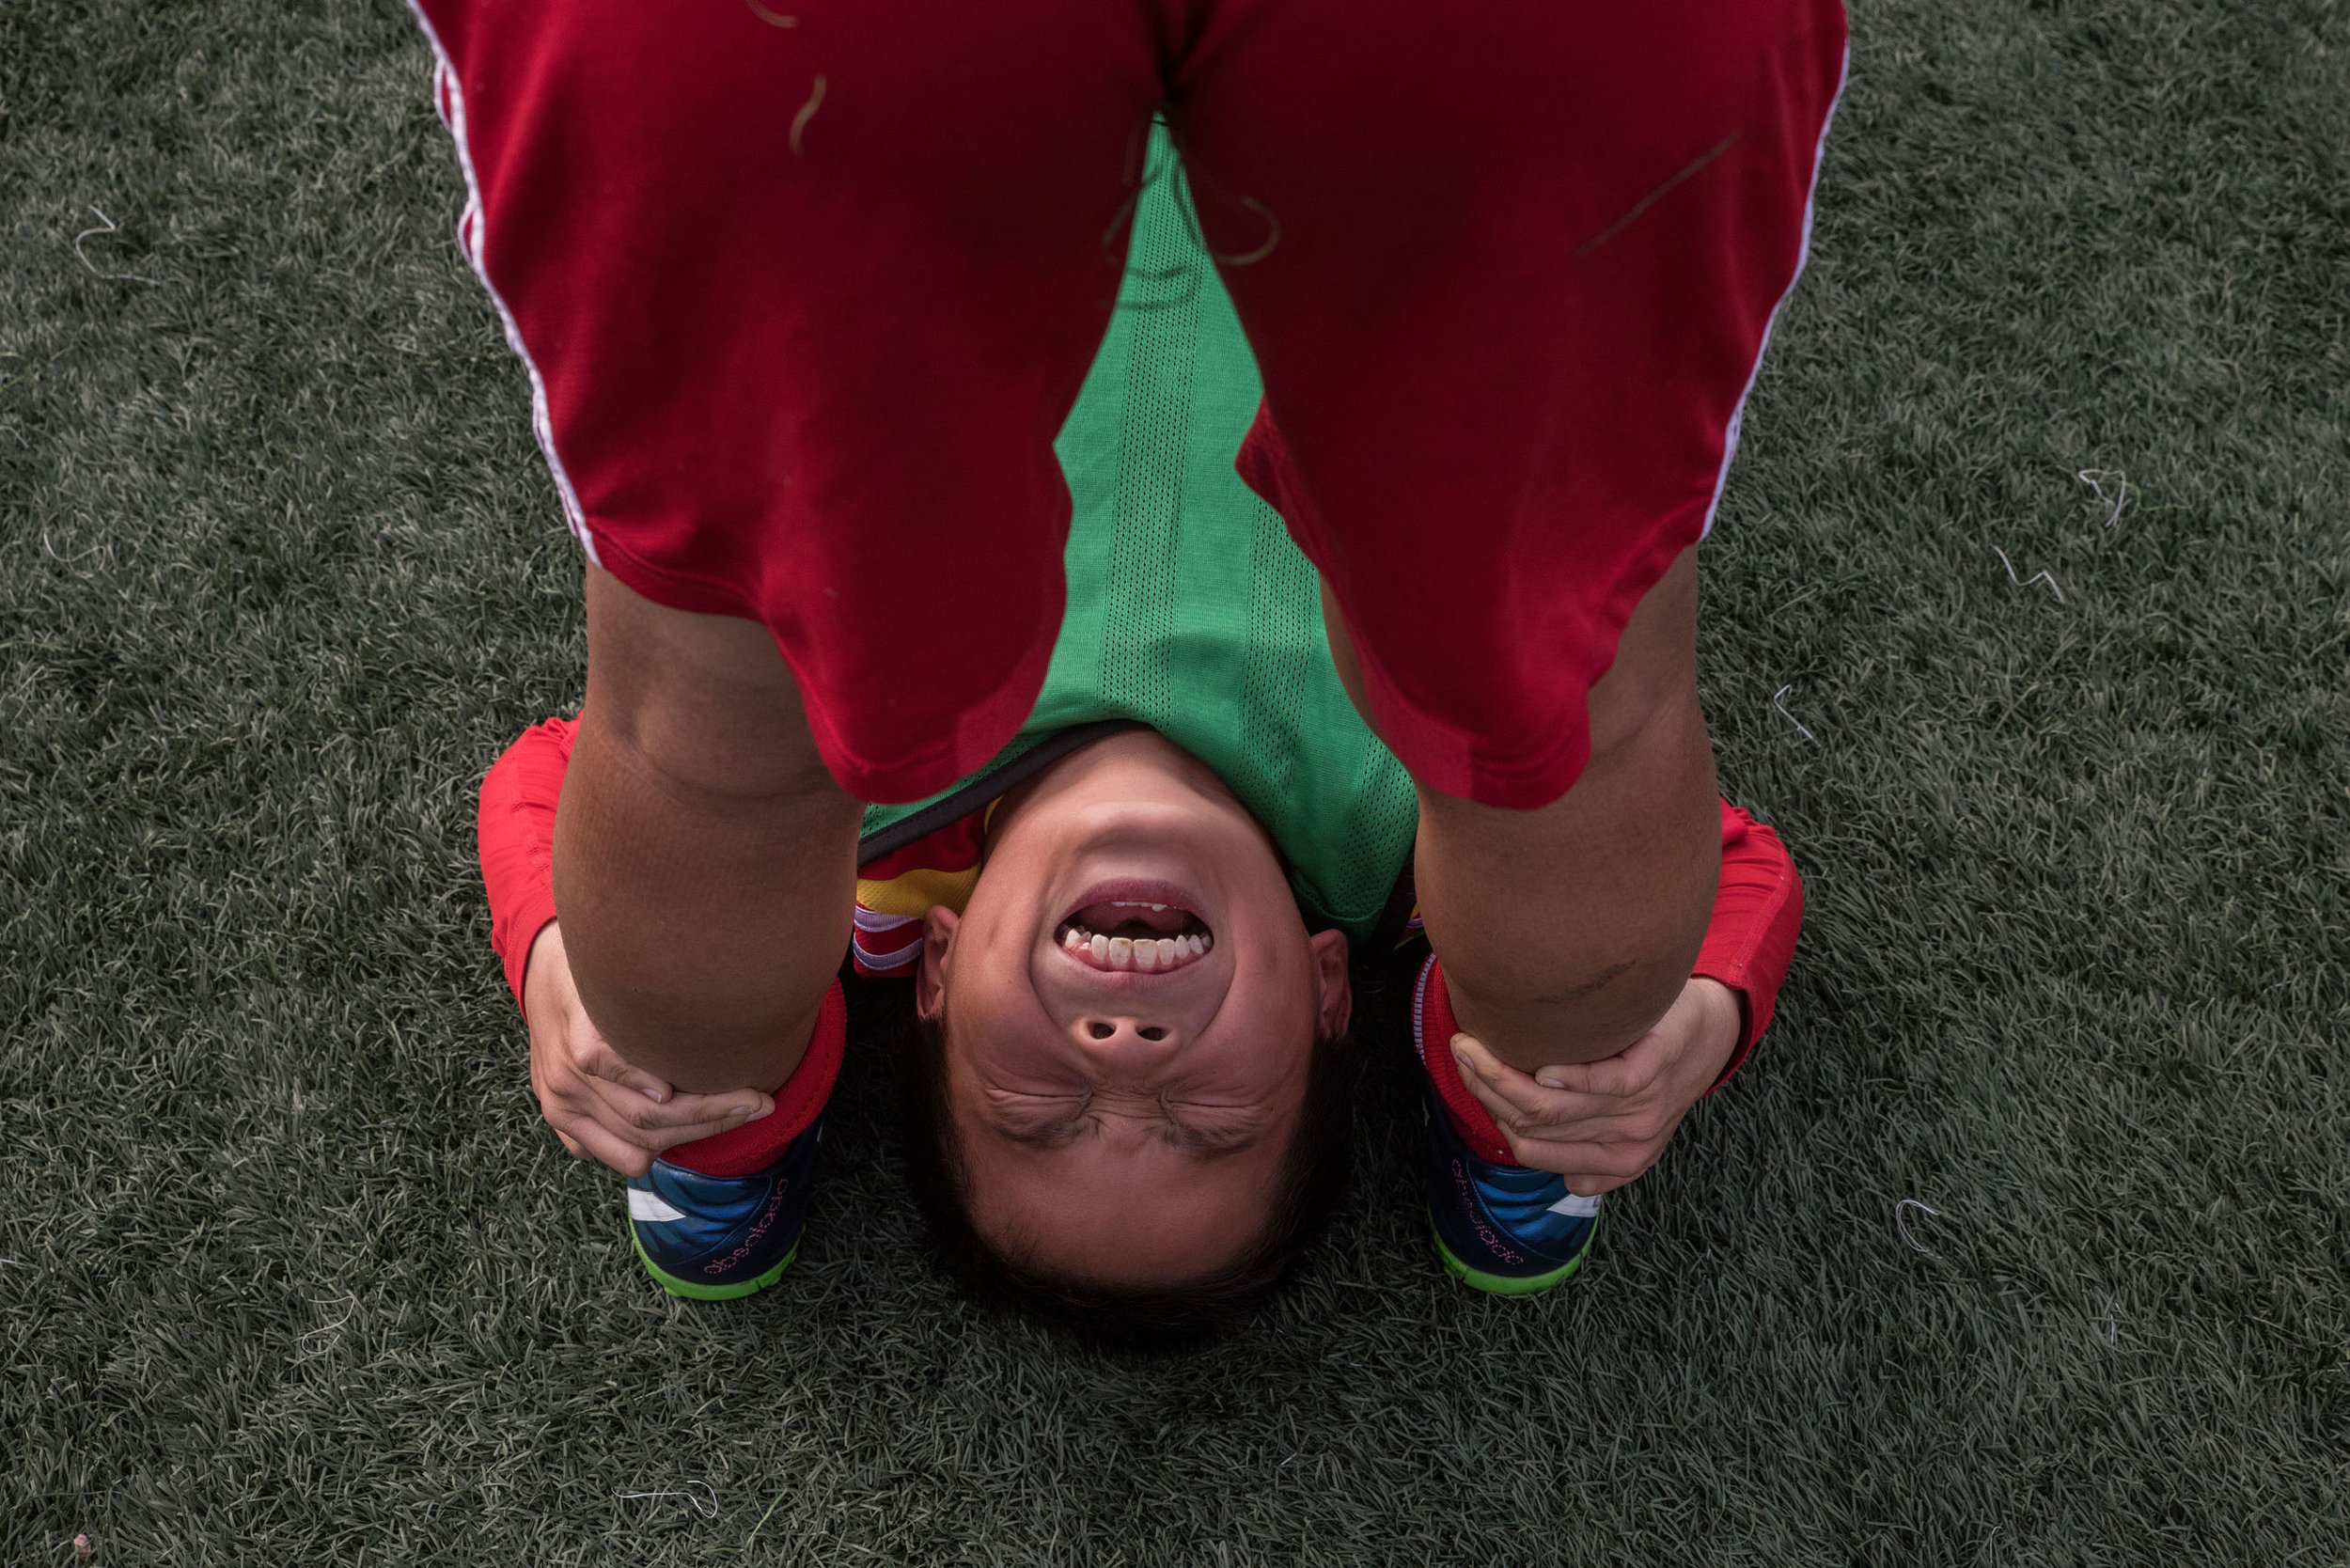 A student at pain during a gym session.